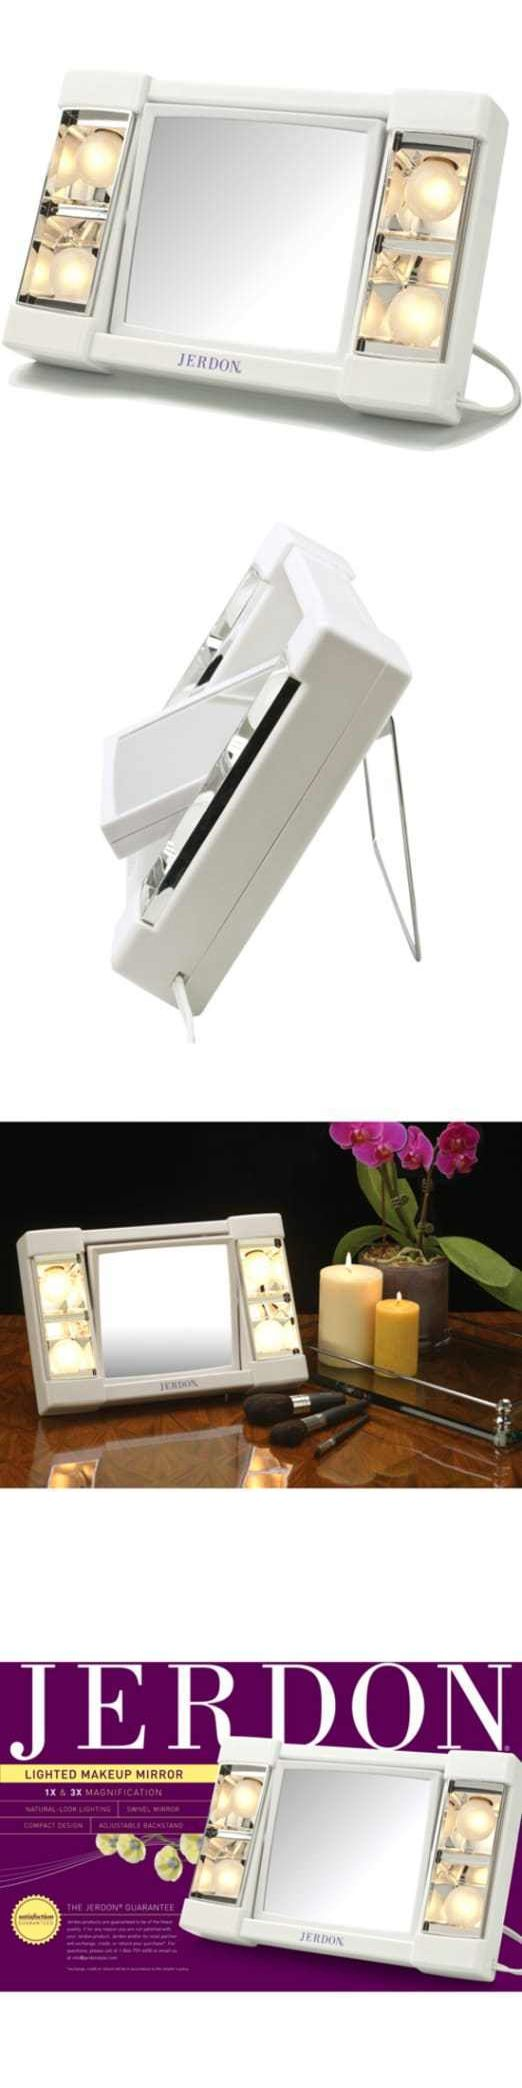 Makeup Mirrors: Jerdon 6 Portable Tabletop 2-Sided Swivel Lighted Makeup Mirror White BUY IT NOW ONLY: $35.53